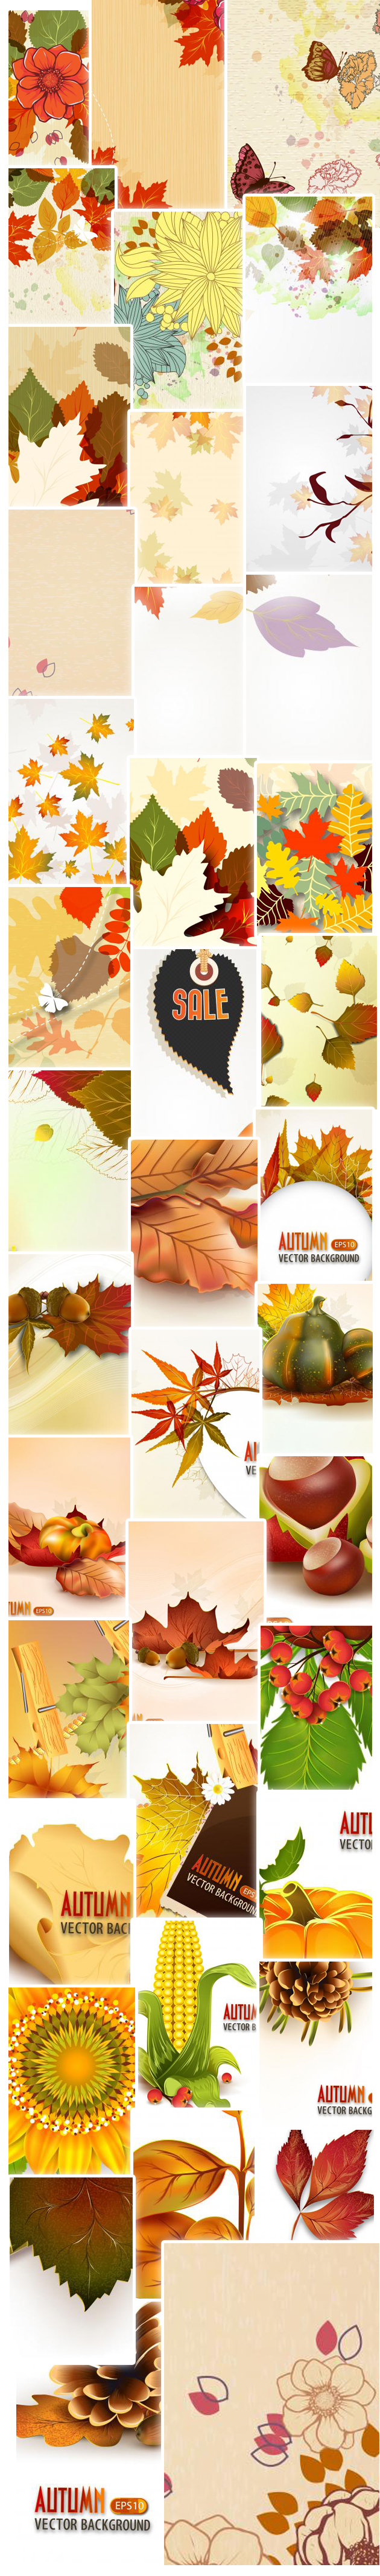 autumn-illustrations-large